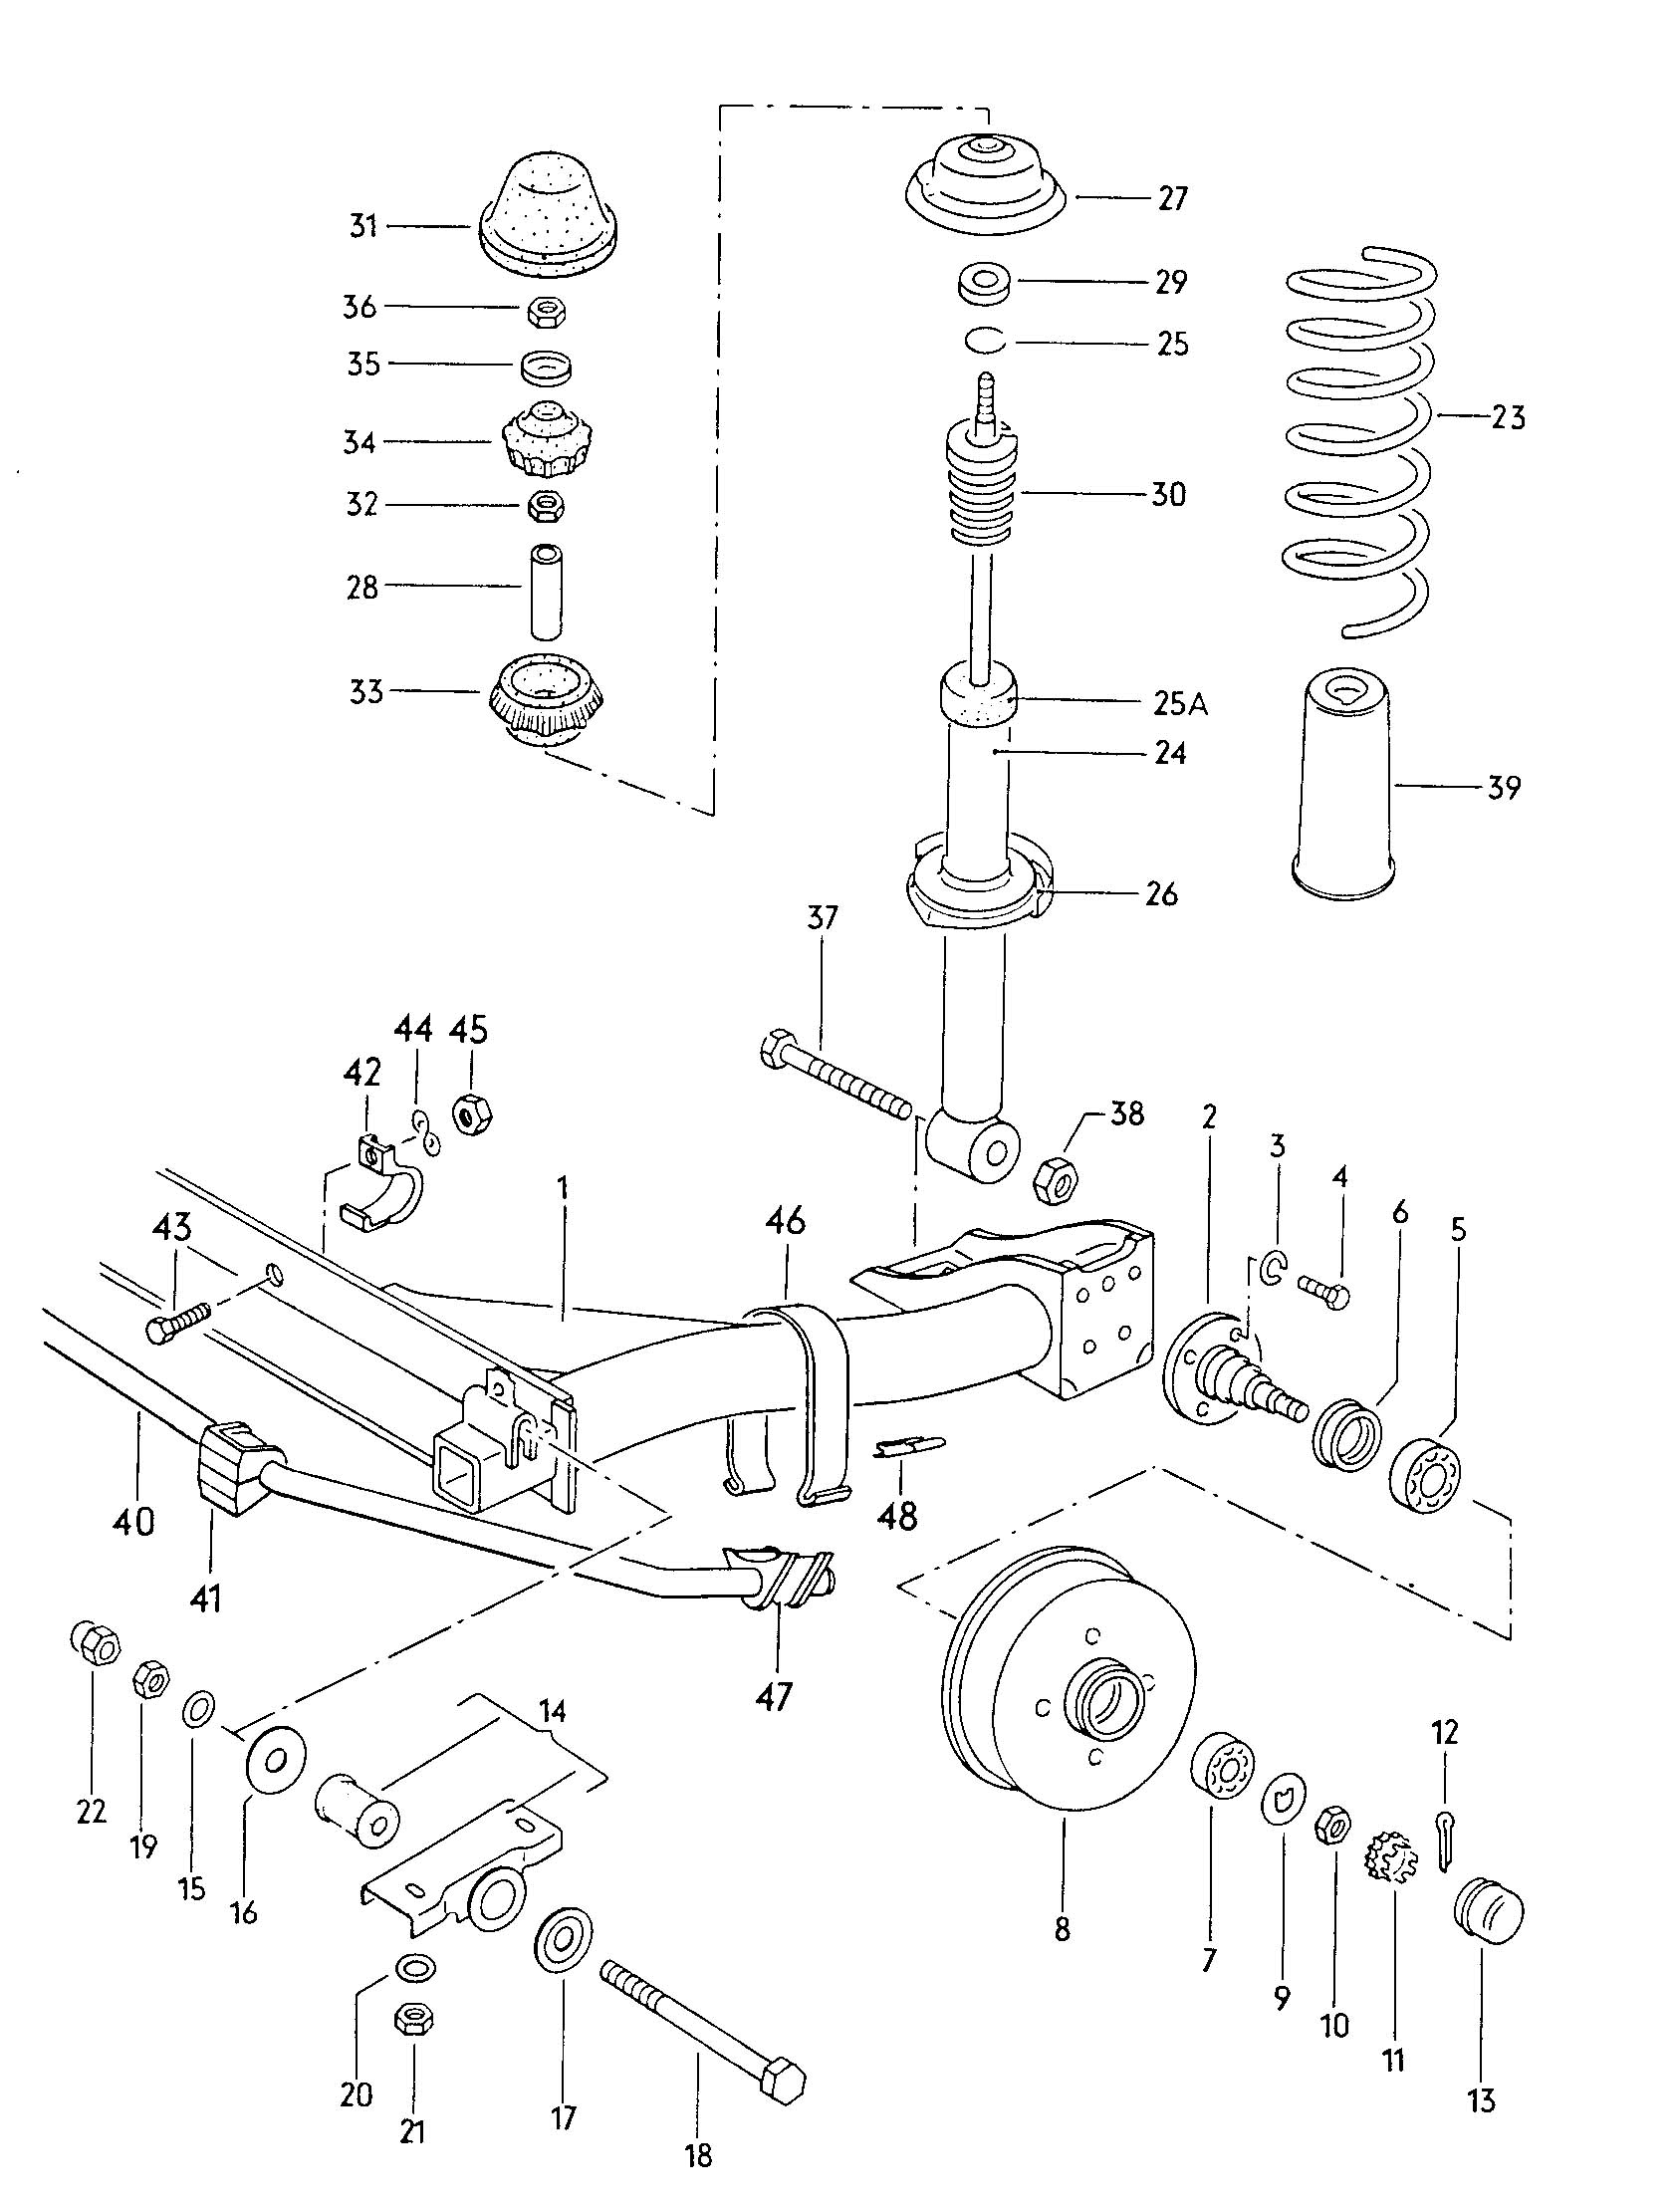 Volkswagen Rabbit Rear Axle Beam With Attachment Shock Absorber Coil Spring Stabilizer Parts Rear